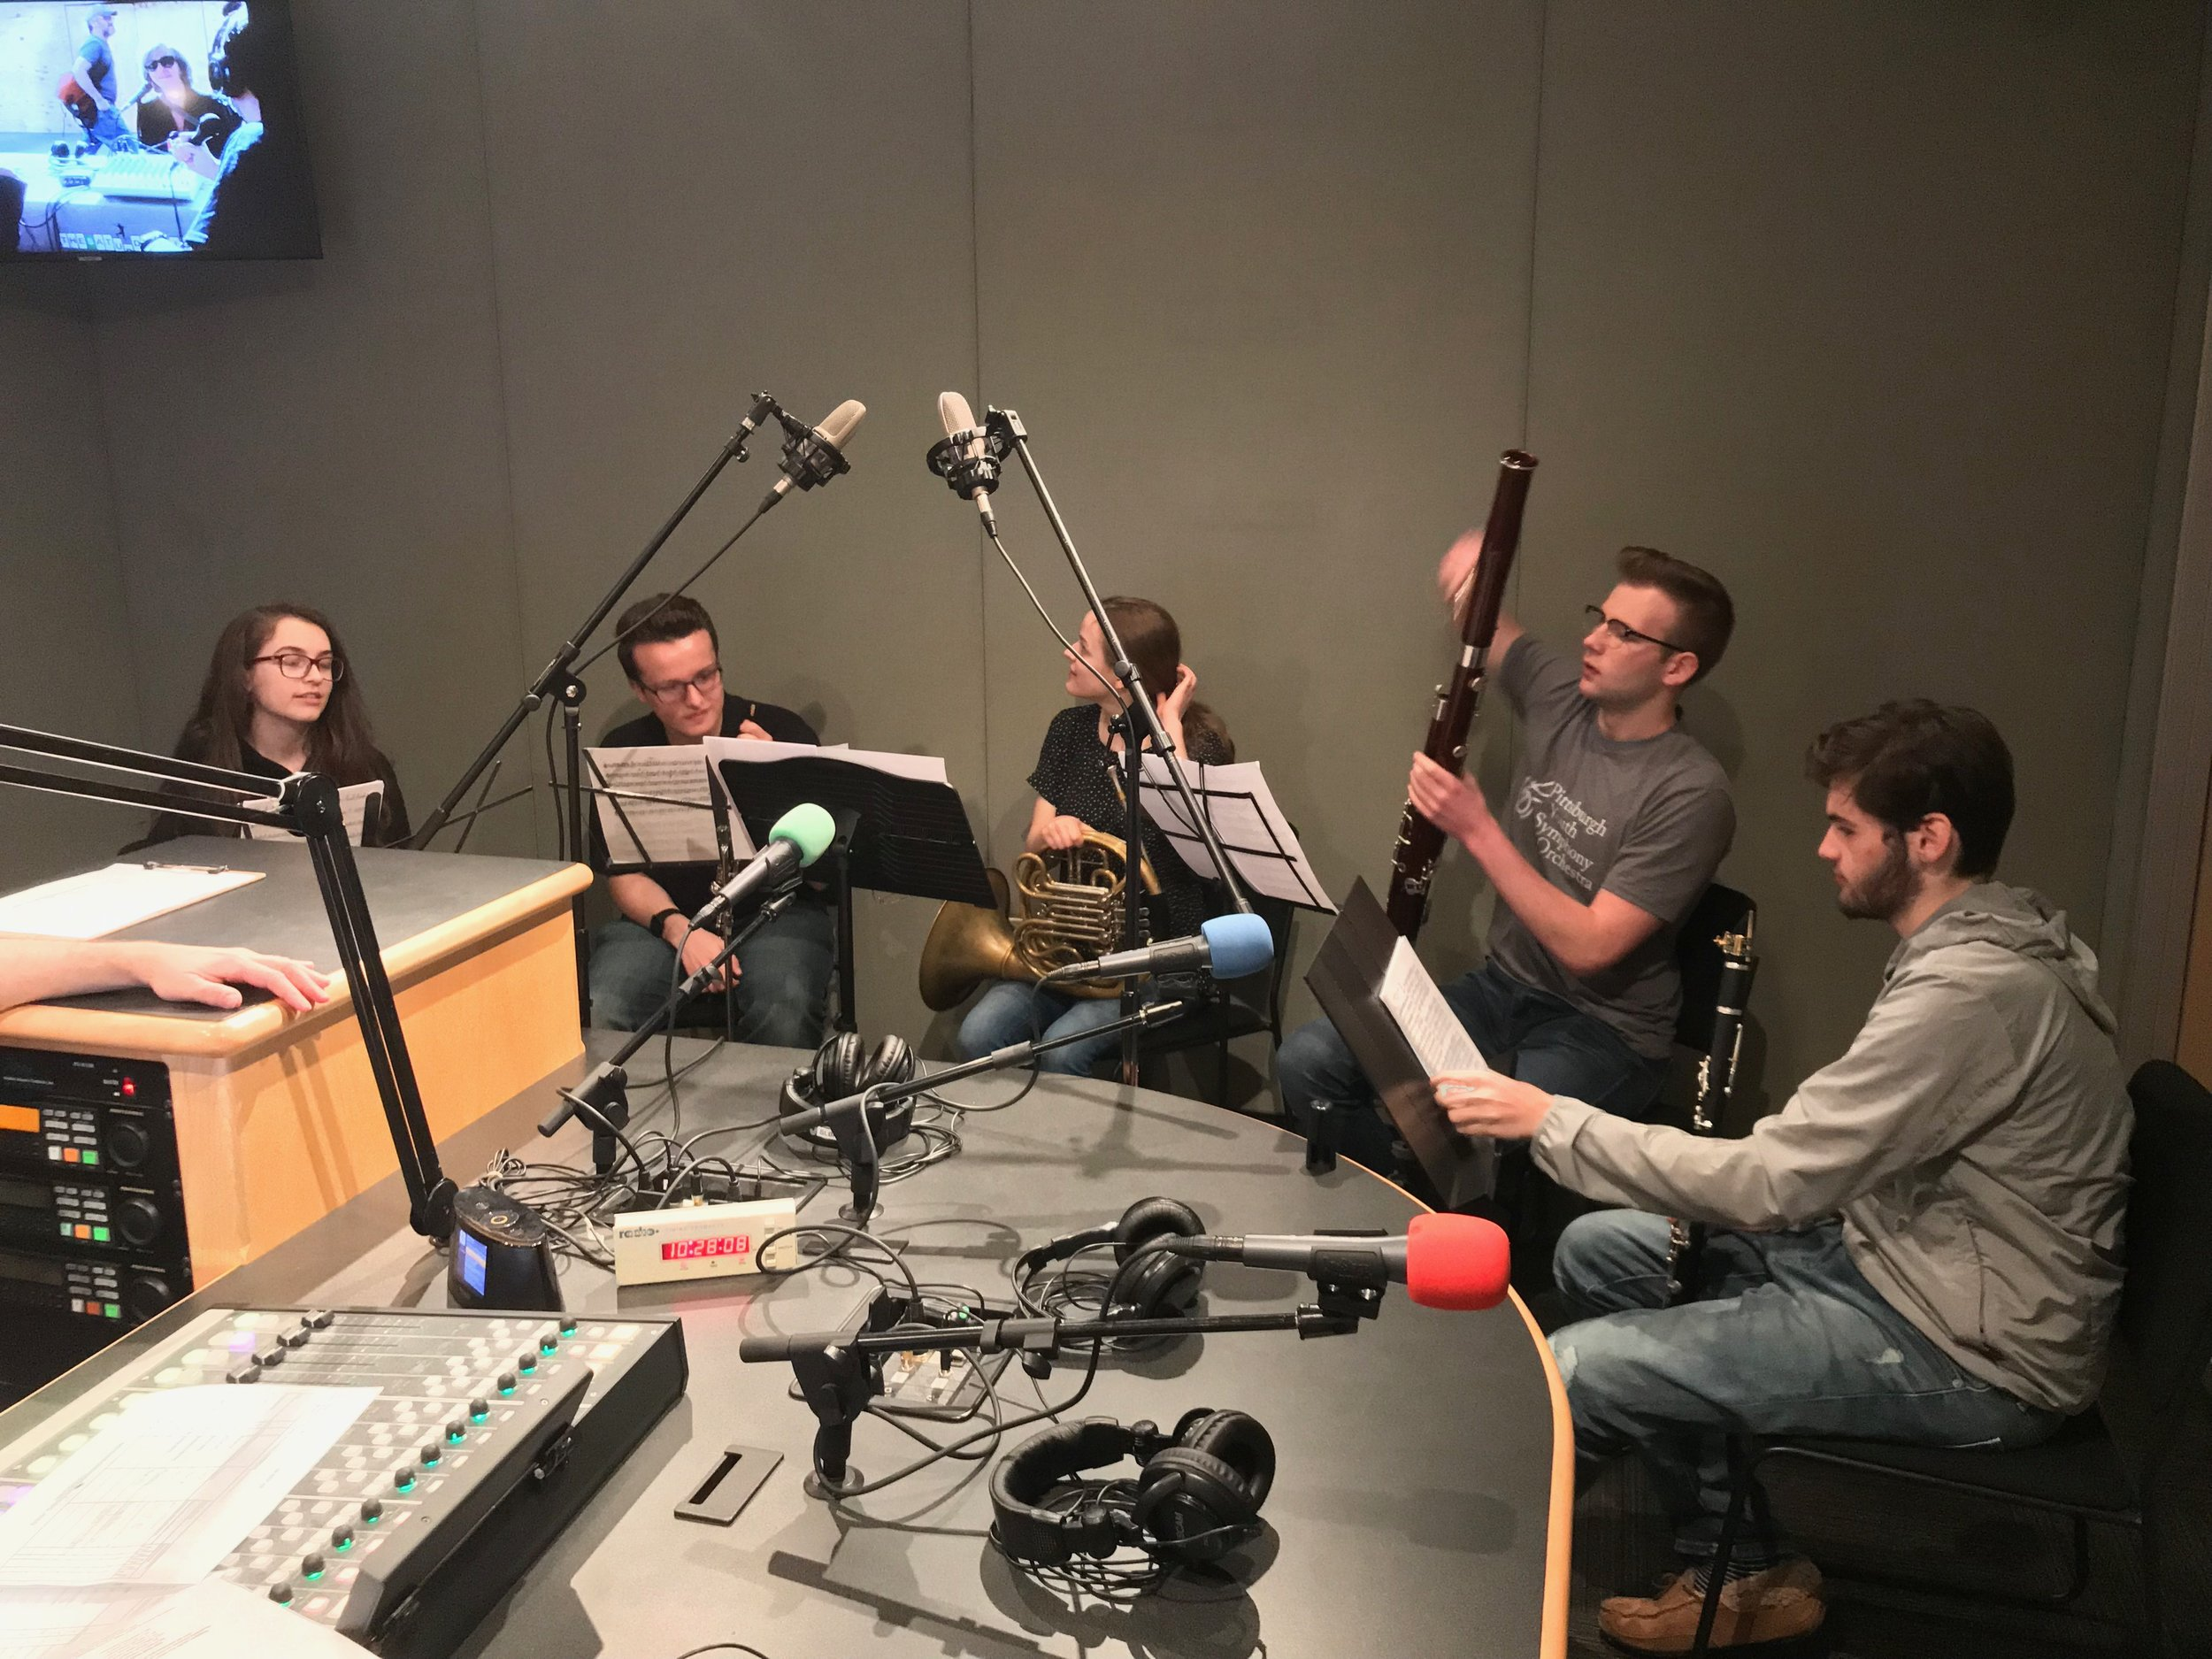 Children's Museum - SLB Radio - Saturday, April 20, 2019PYSO's Wild Ginger Quintet - Dinah, Geoffrey, Susan, Brody, and Nathan - performed live on the Saturday Light Brigade radio show.